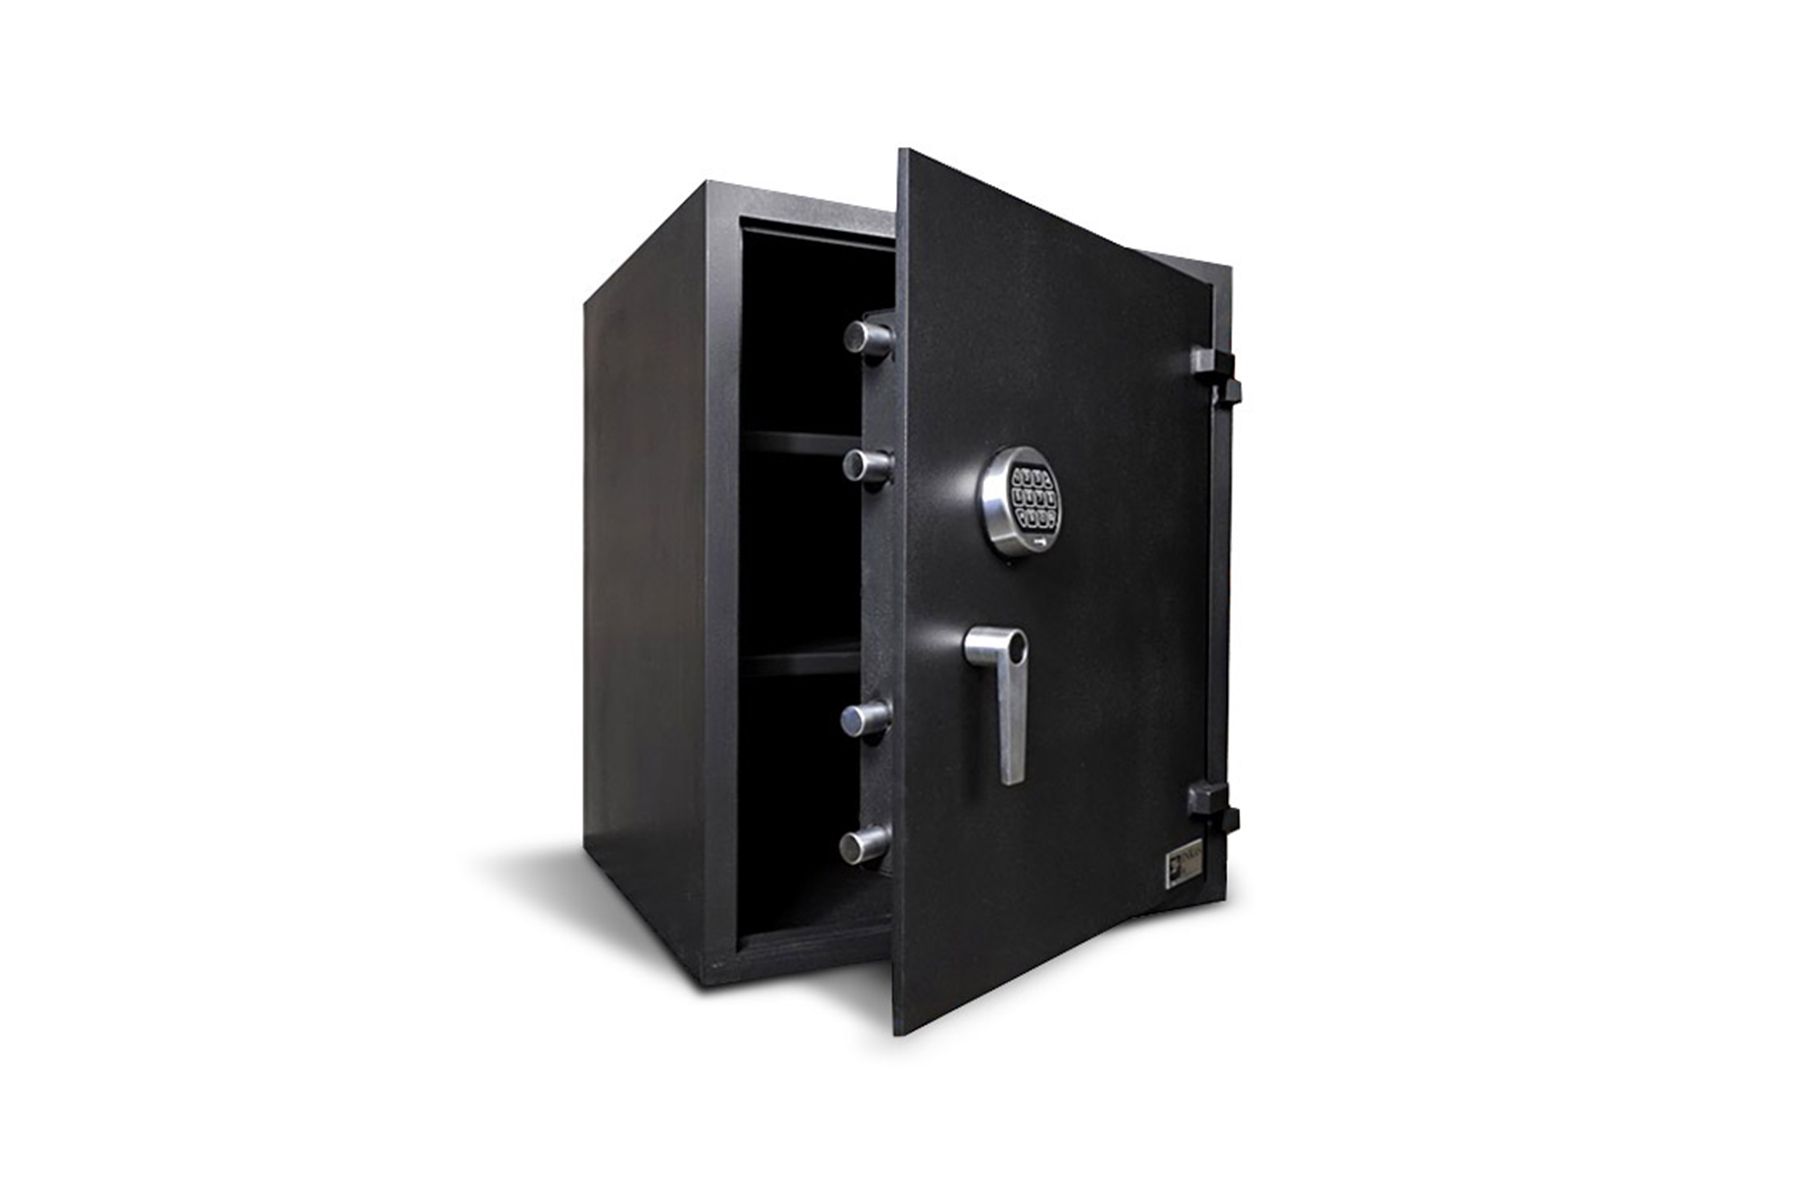 Inkas Oberon B-Rated Safe